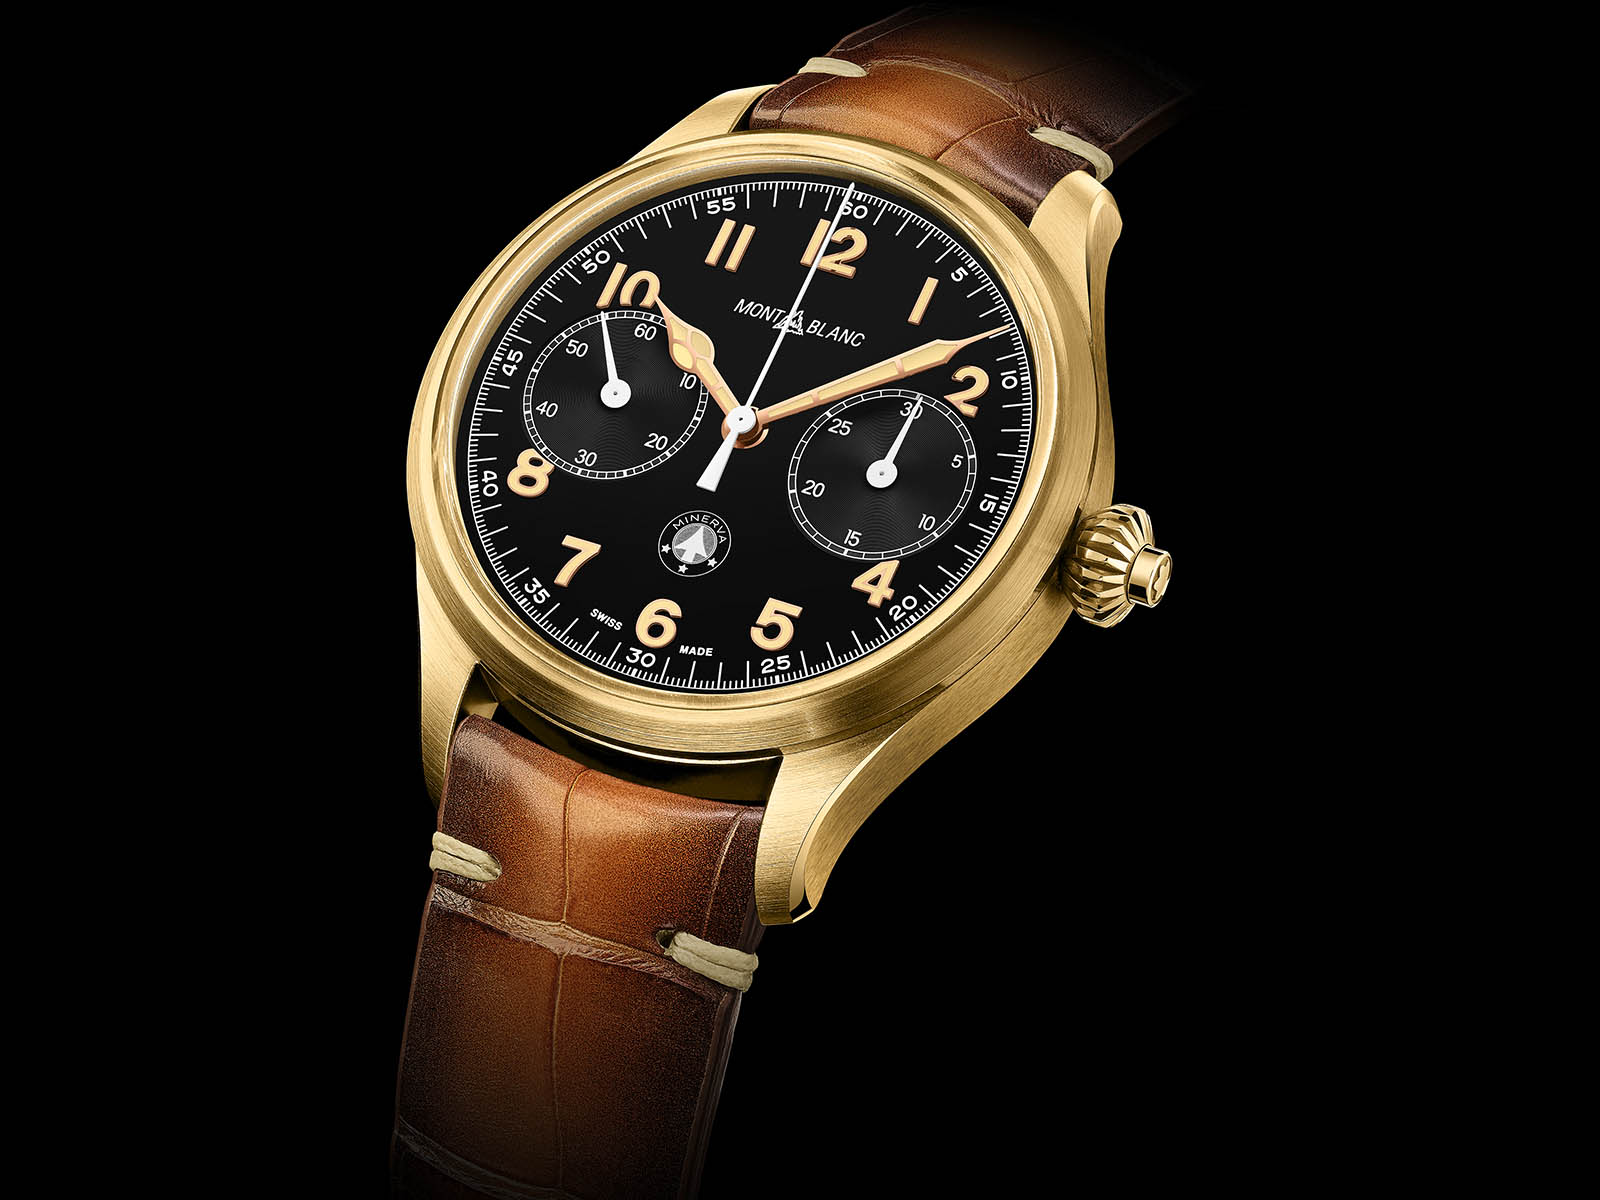 128506-montblanc-1858-monopusher-chronograph-origins-limited-edition-100-5.jpg